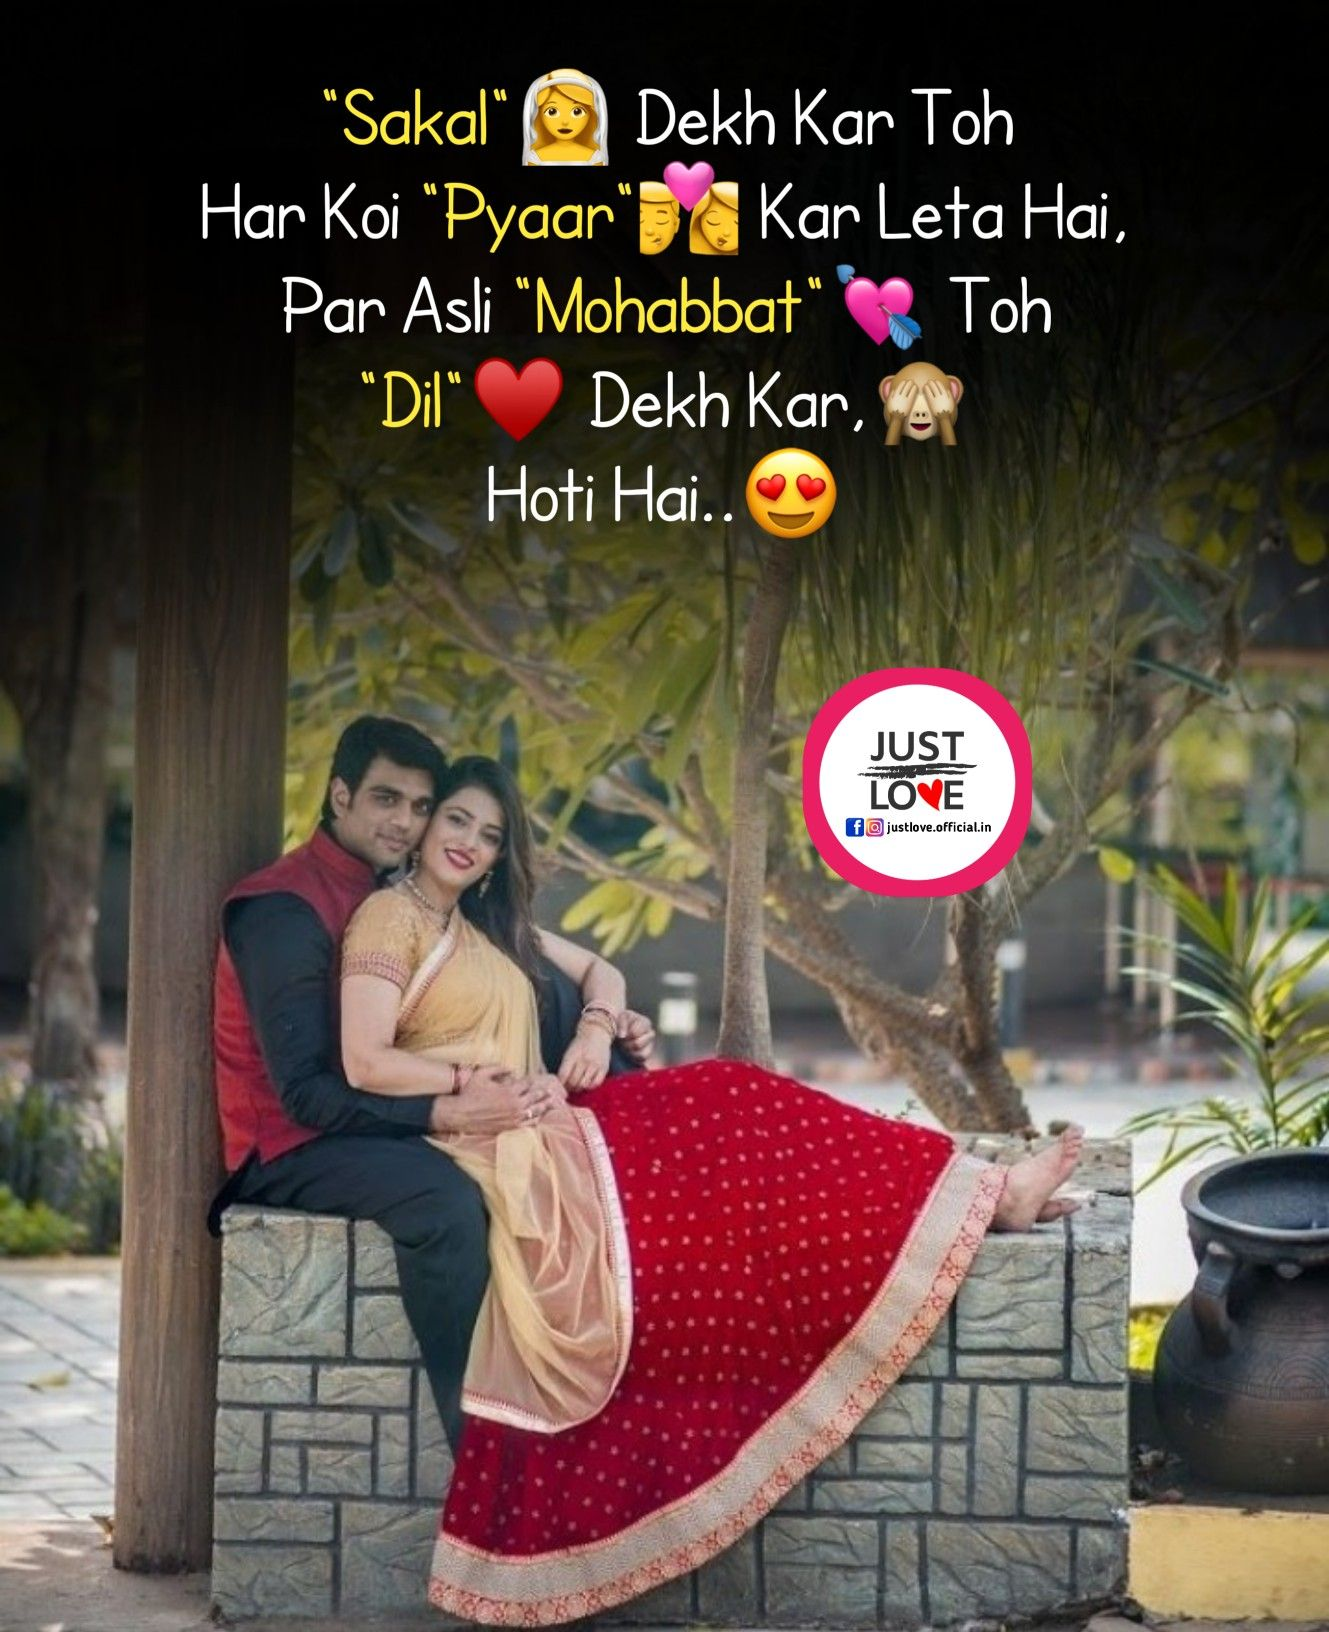 Pin By Syed Irtaza Haider On Justlove Official In Happy Propose Day Propose Day Happy